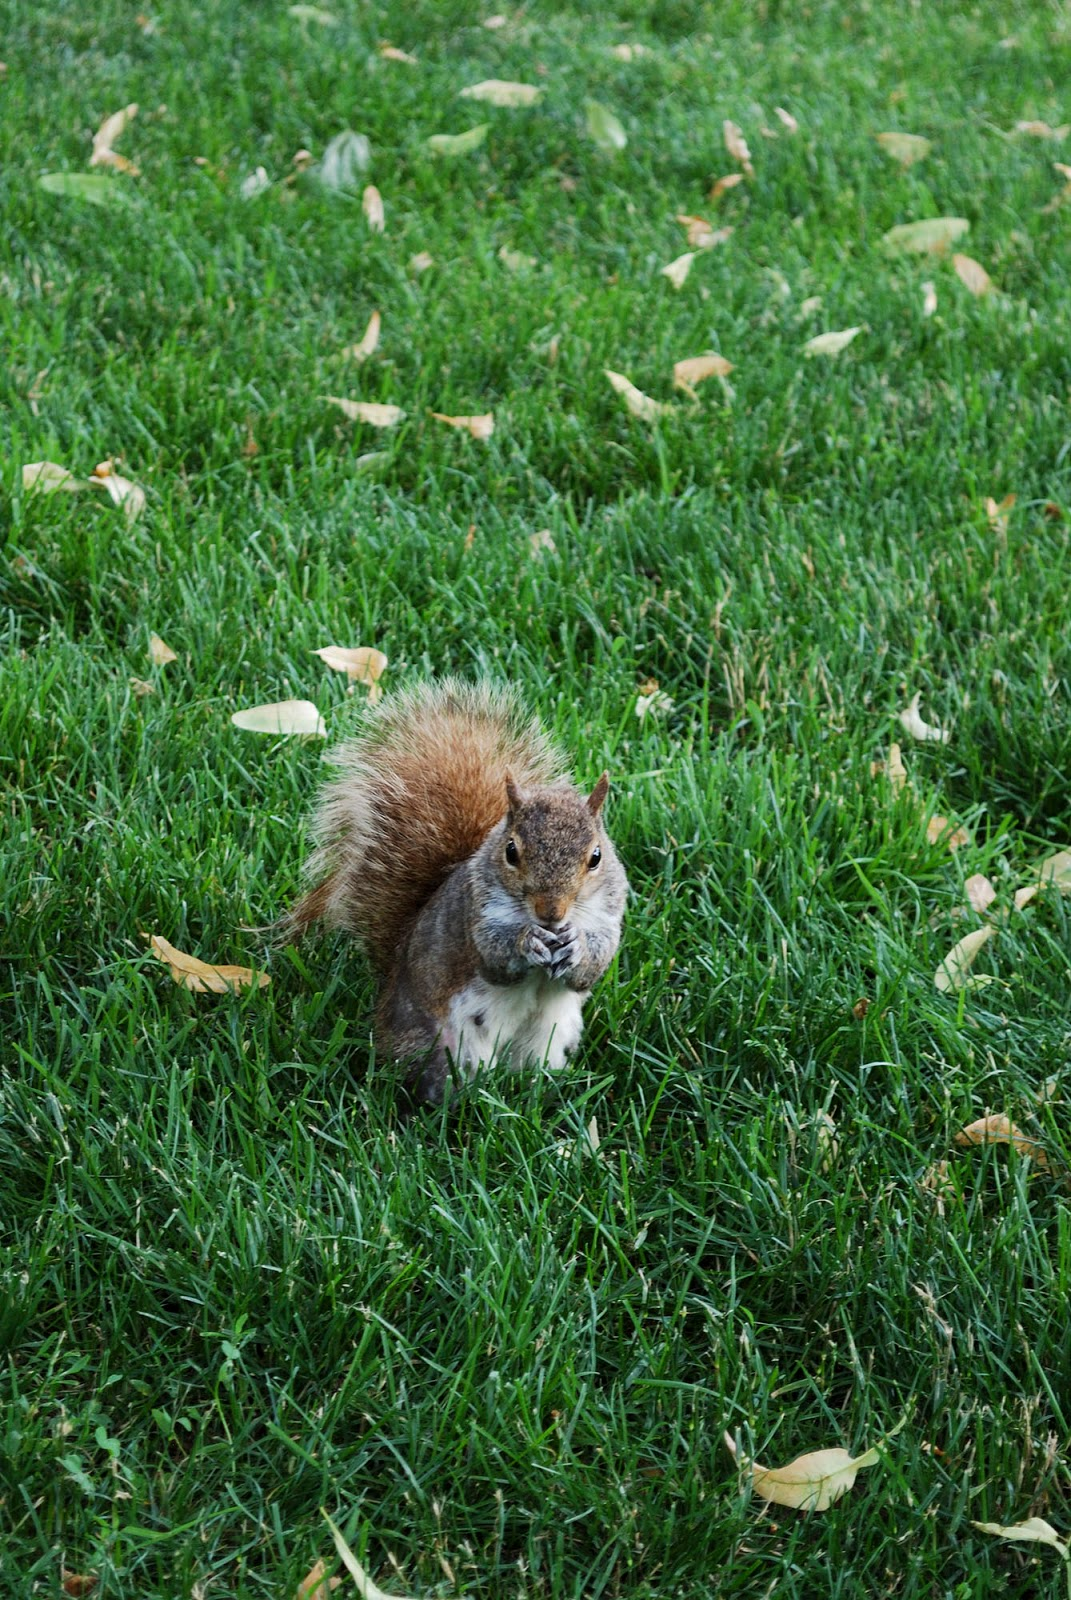 squirrel common boston itinerary plan guide tourism usa america park east coast